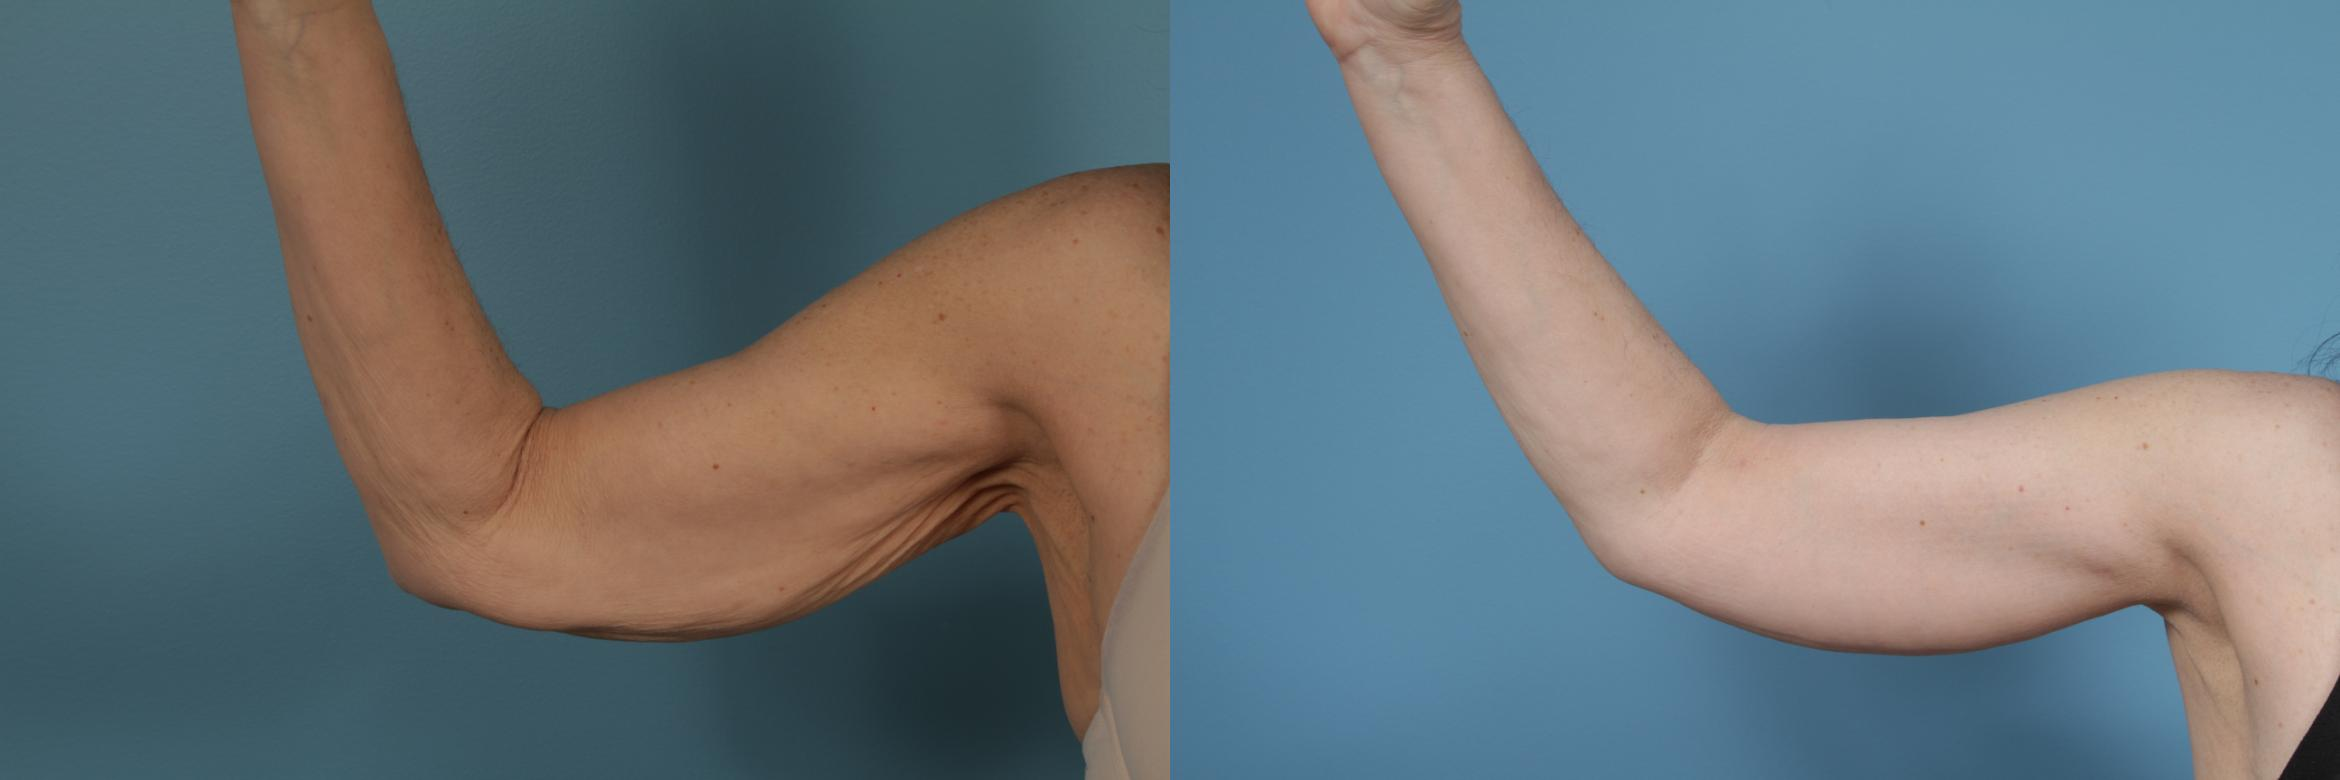 Arm Lift (Brachioplasty) Case 282 Before & After View #1 | Chicago, IL | TLKM Plastic Surgery